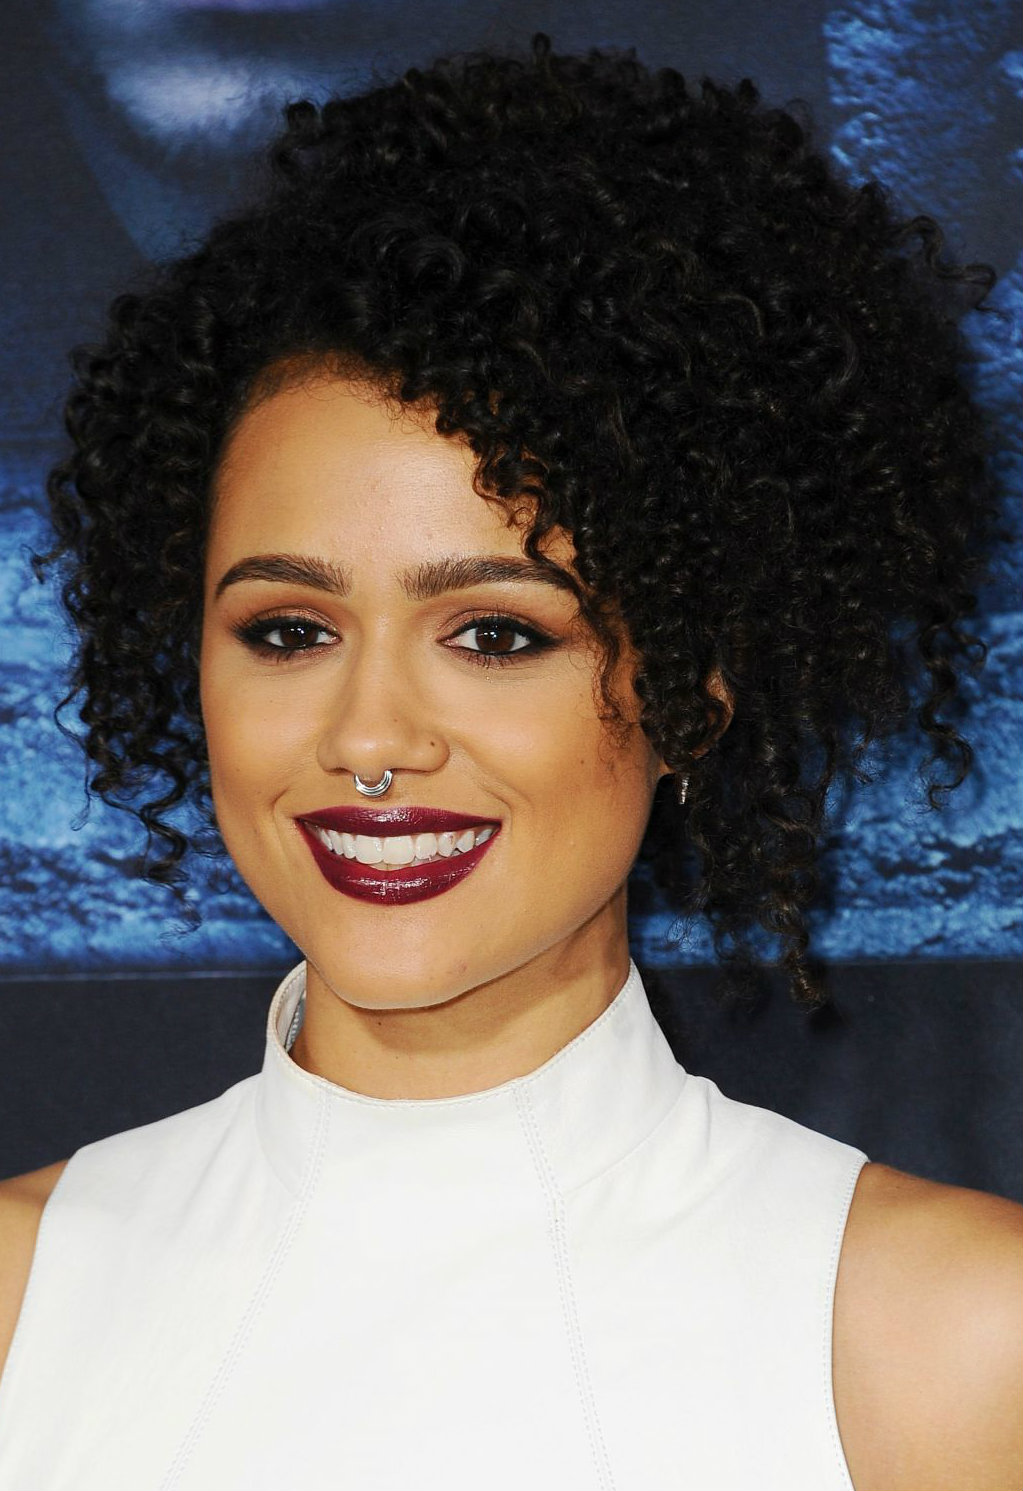 nathalie emmanuel | game of thrones wiki | fandom poweredwikia